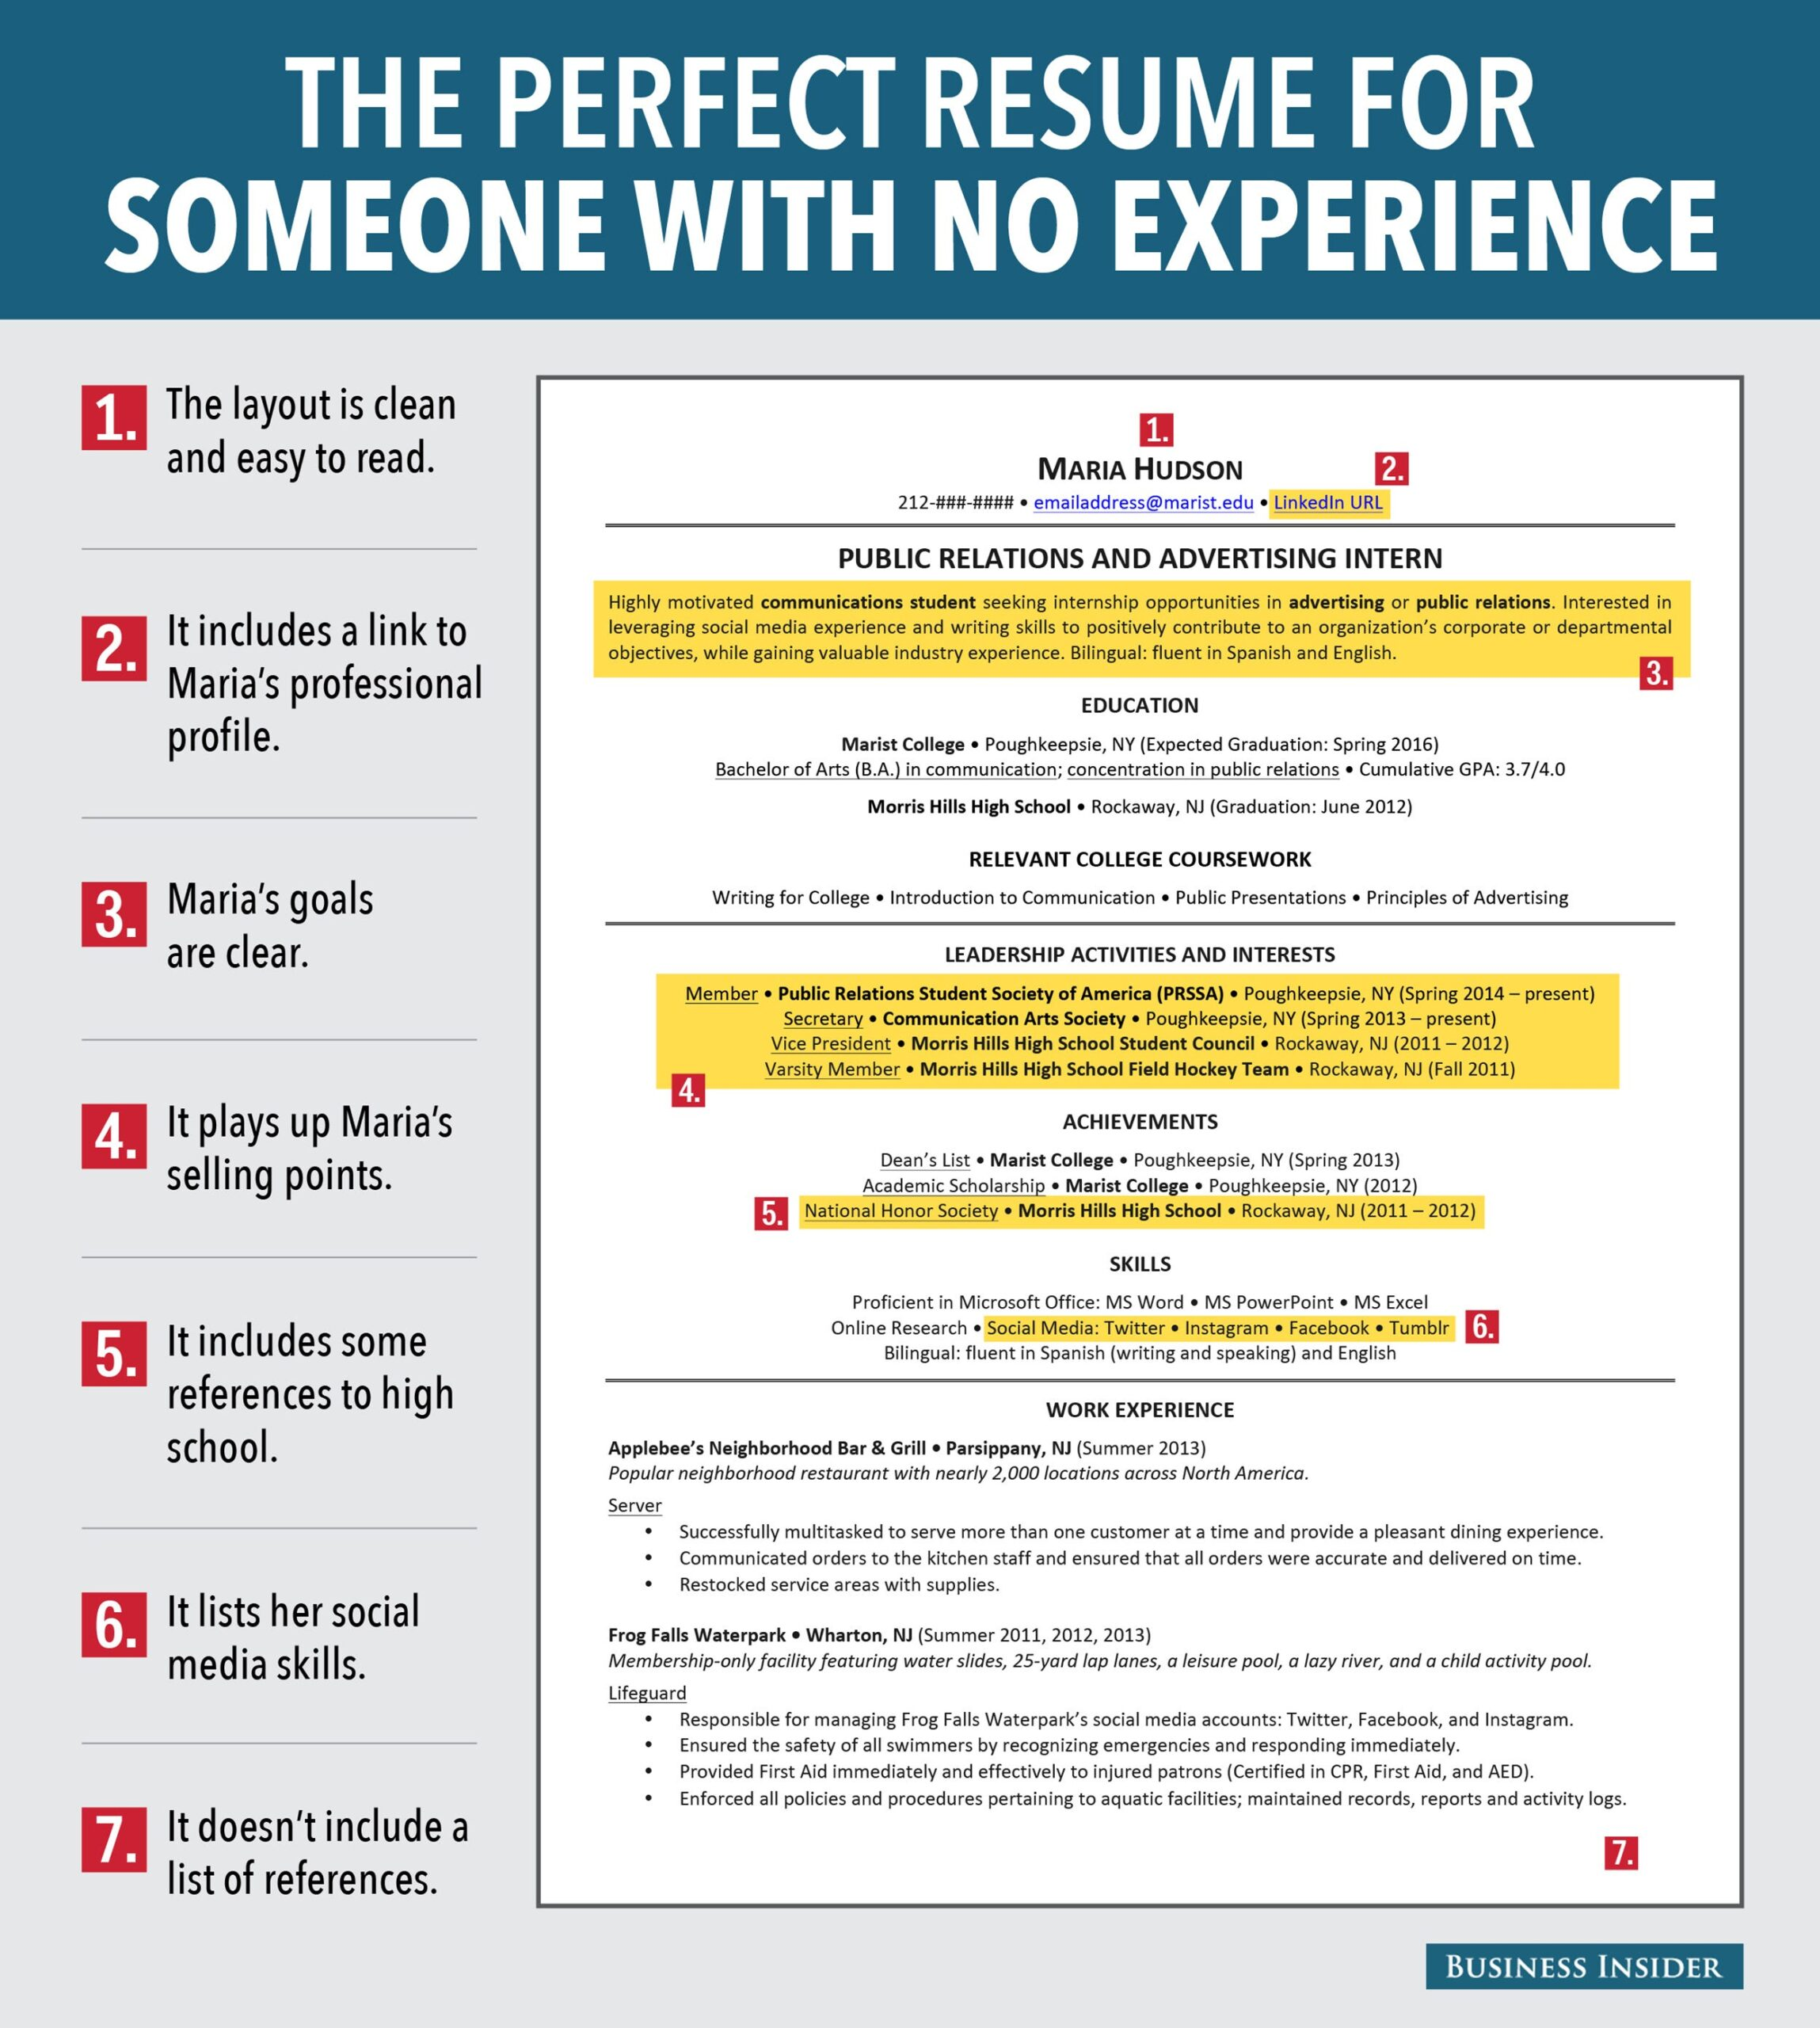 resume for job seeker with no experience business insider good summary combination career Resume Good Summary For Resume With No Experience